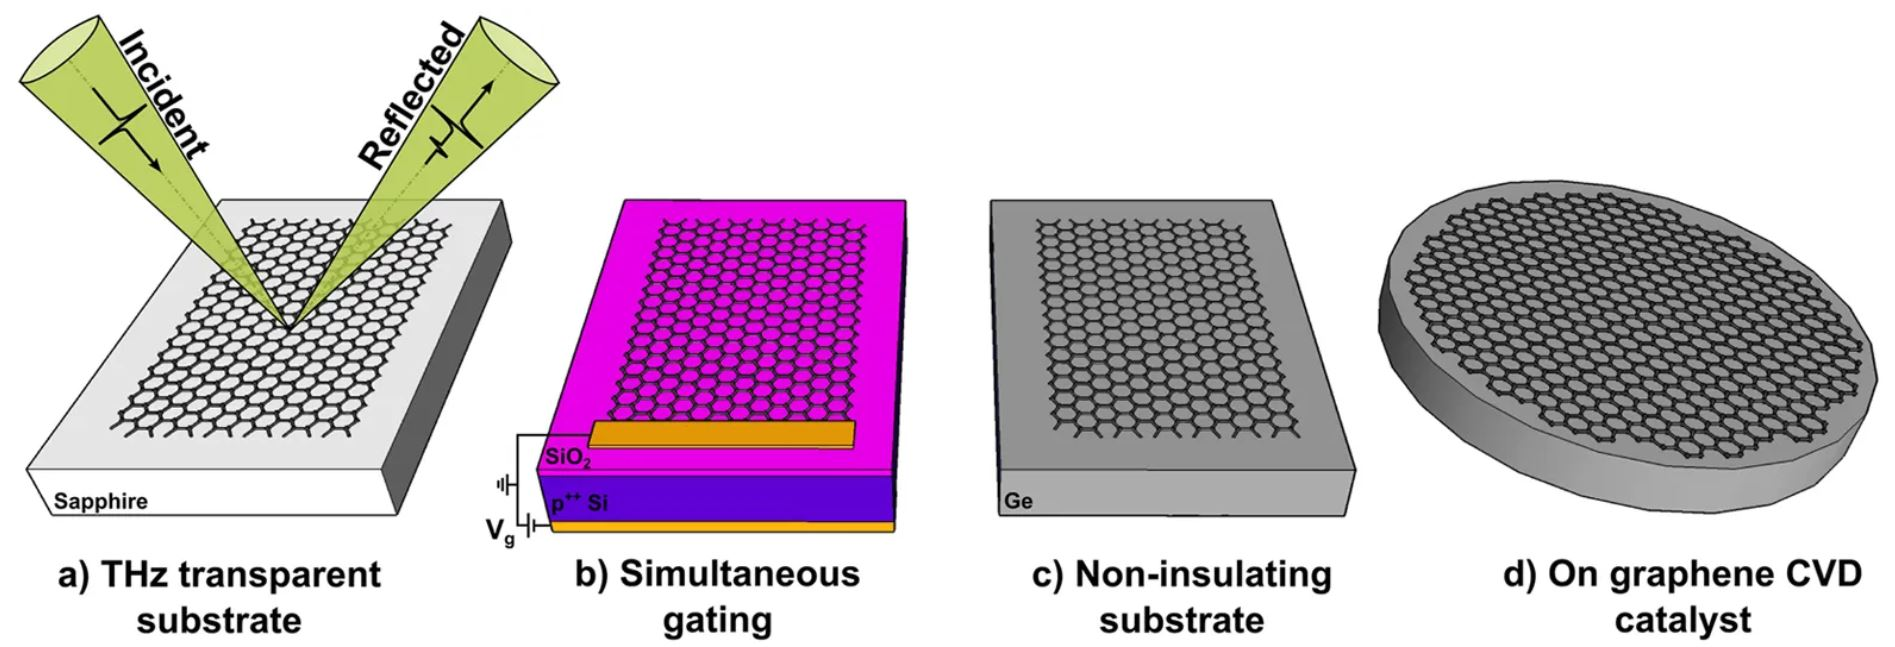 Contactless graphene conductivity mapping on a wide range of substrates with terahertz time-domain reflection spectroscopy